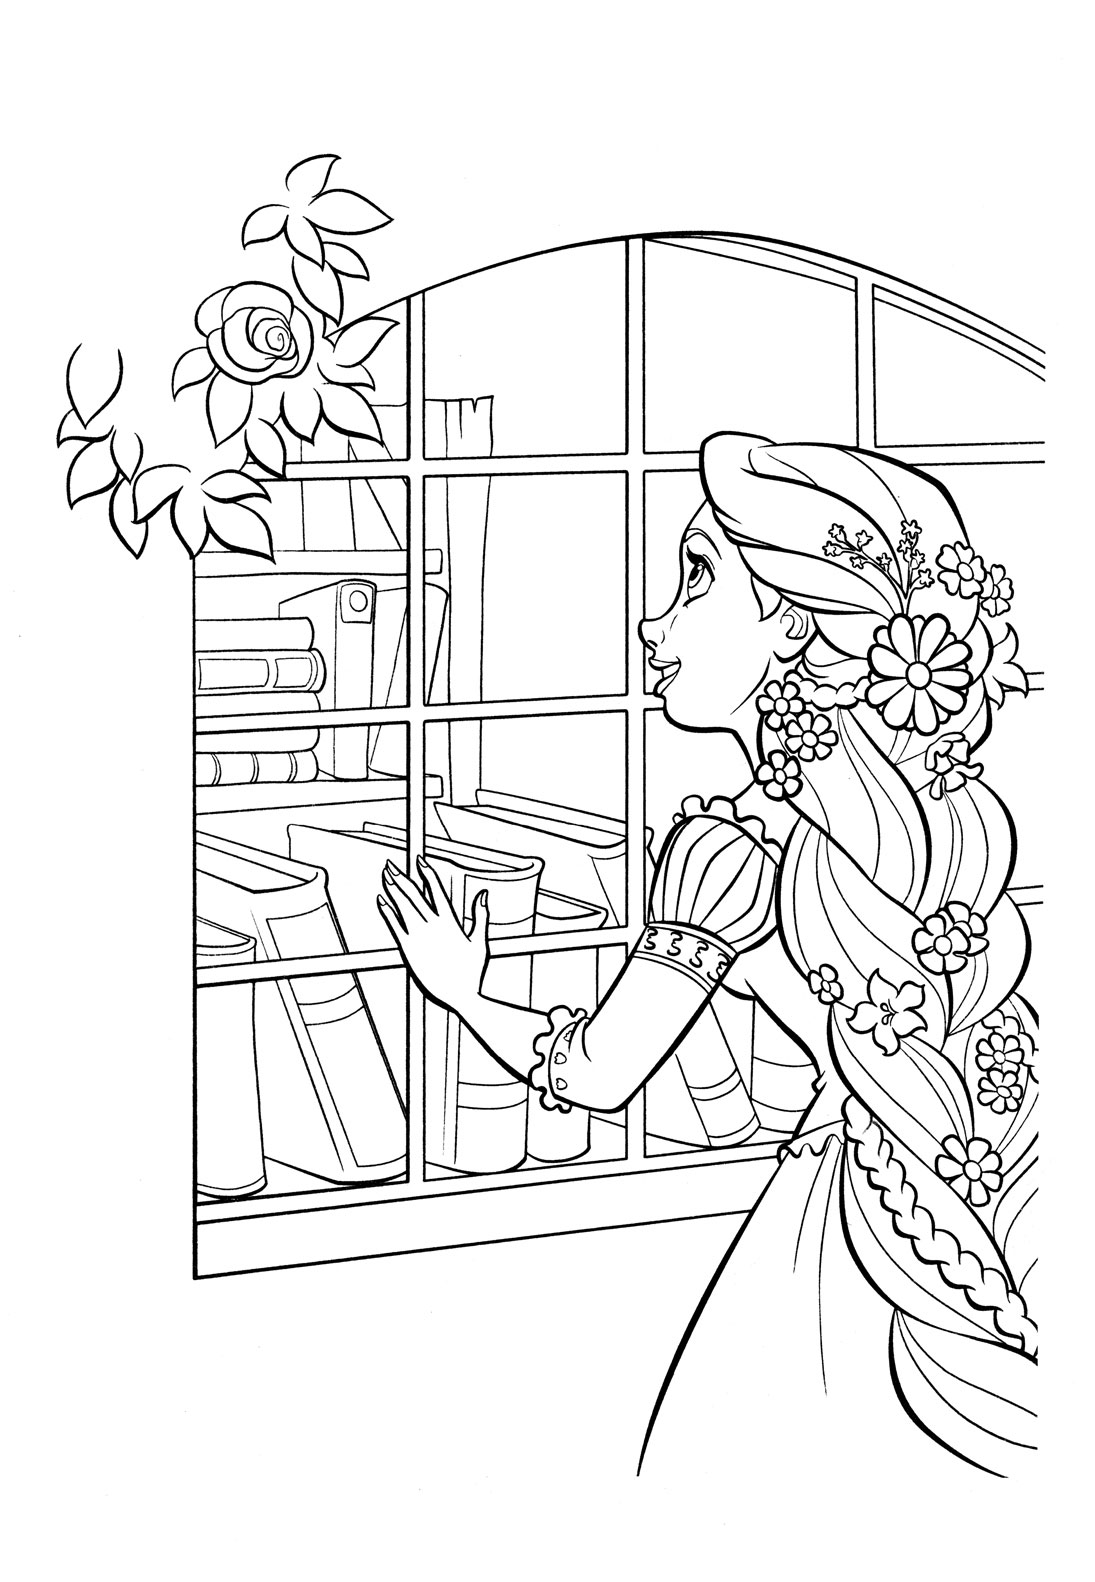 tangled coloring pages disney - photo#39